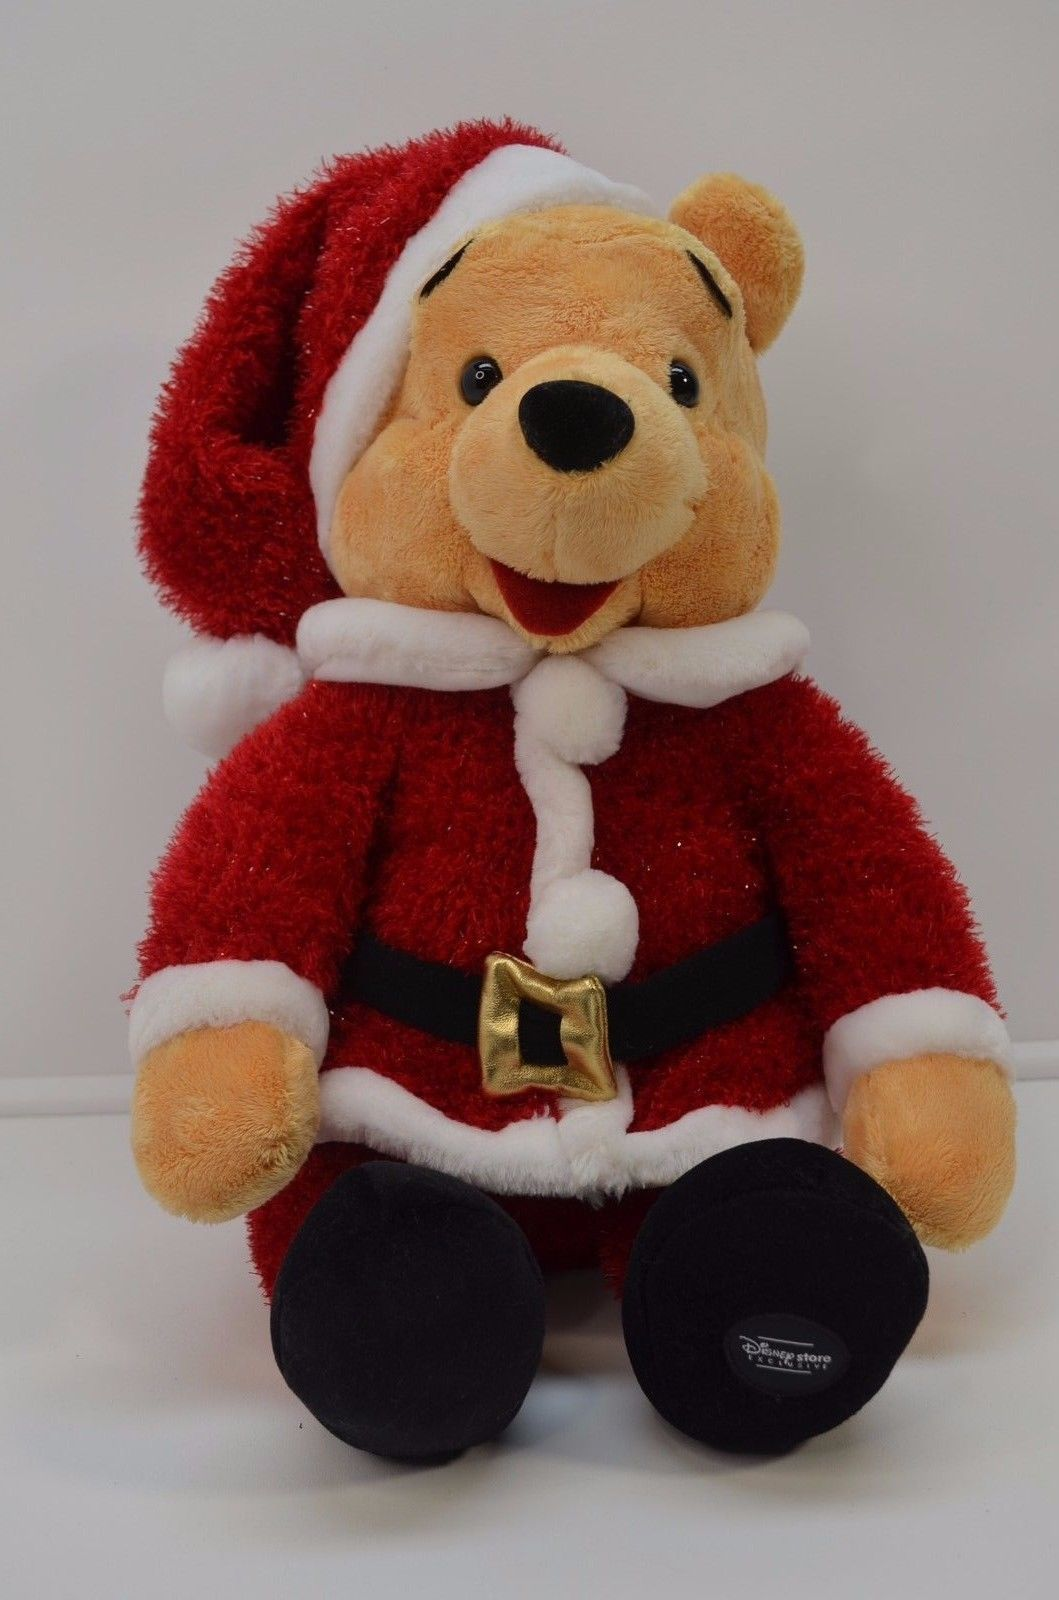 Christmas Toys Disney : Disney store exclusive christmas holiday santa winnie the